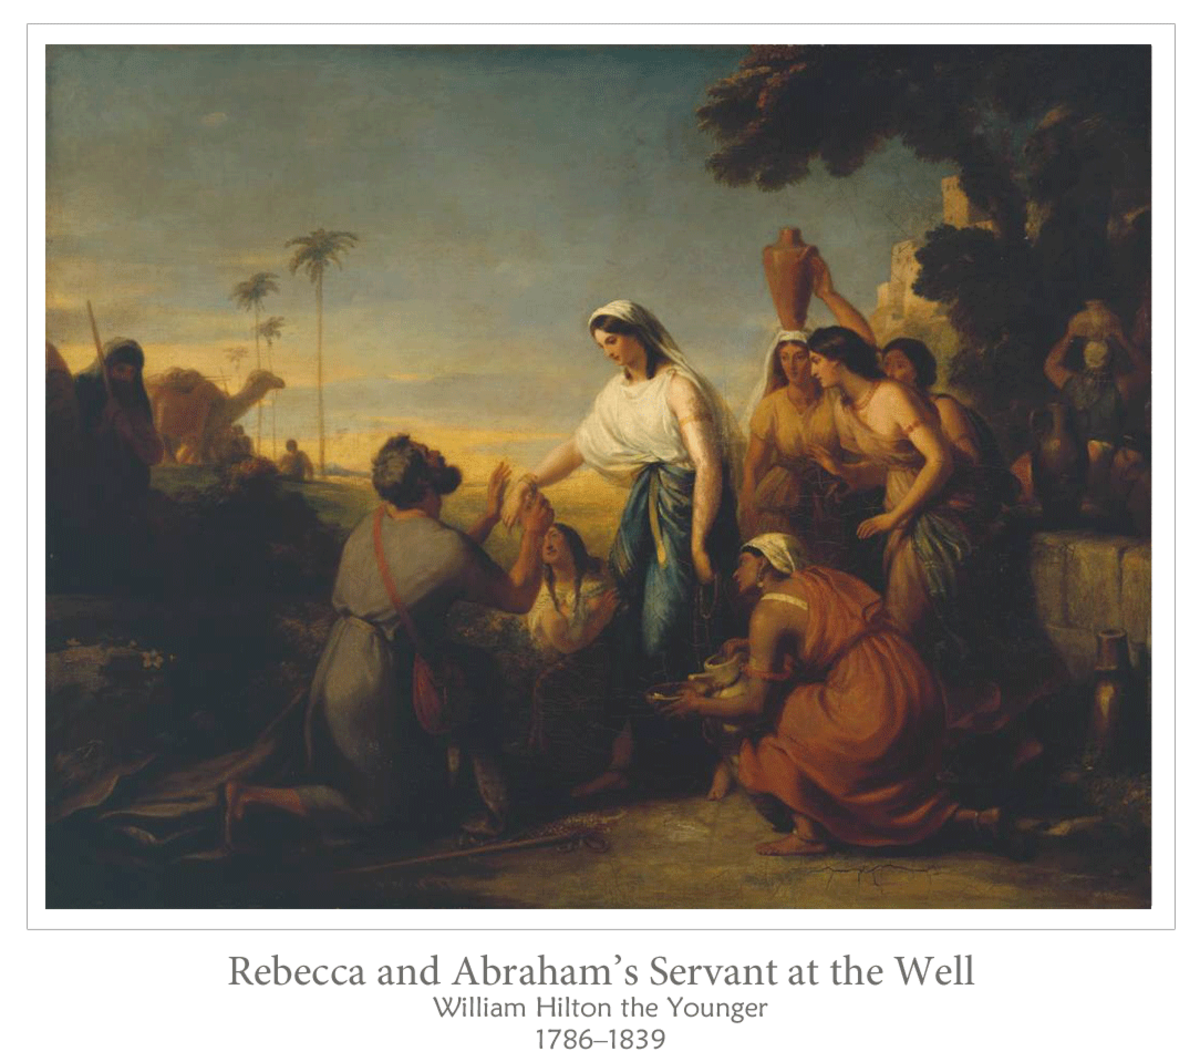 Rebekah and Abraham's servant at the well